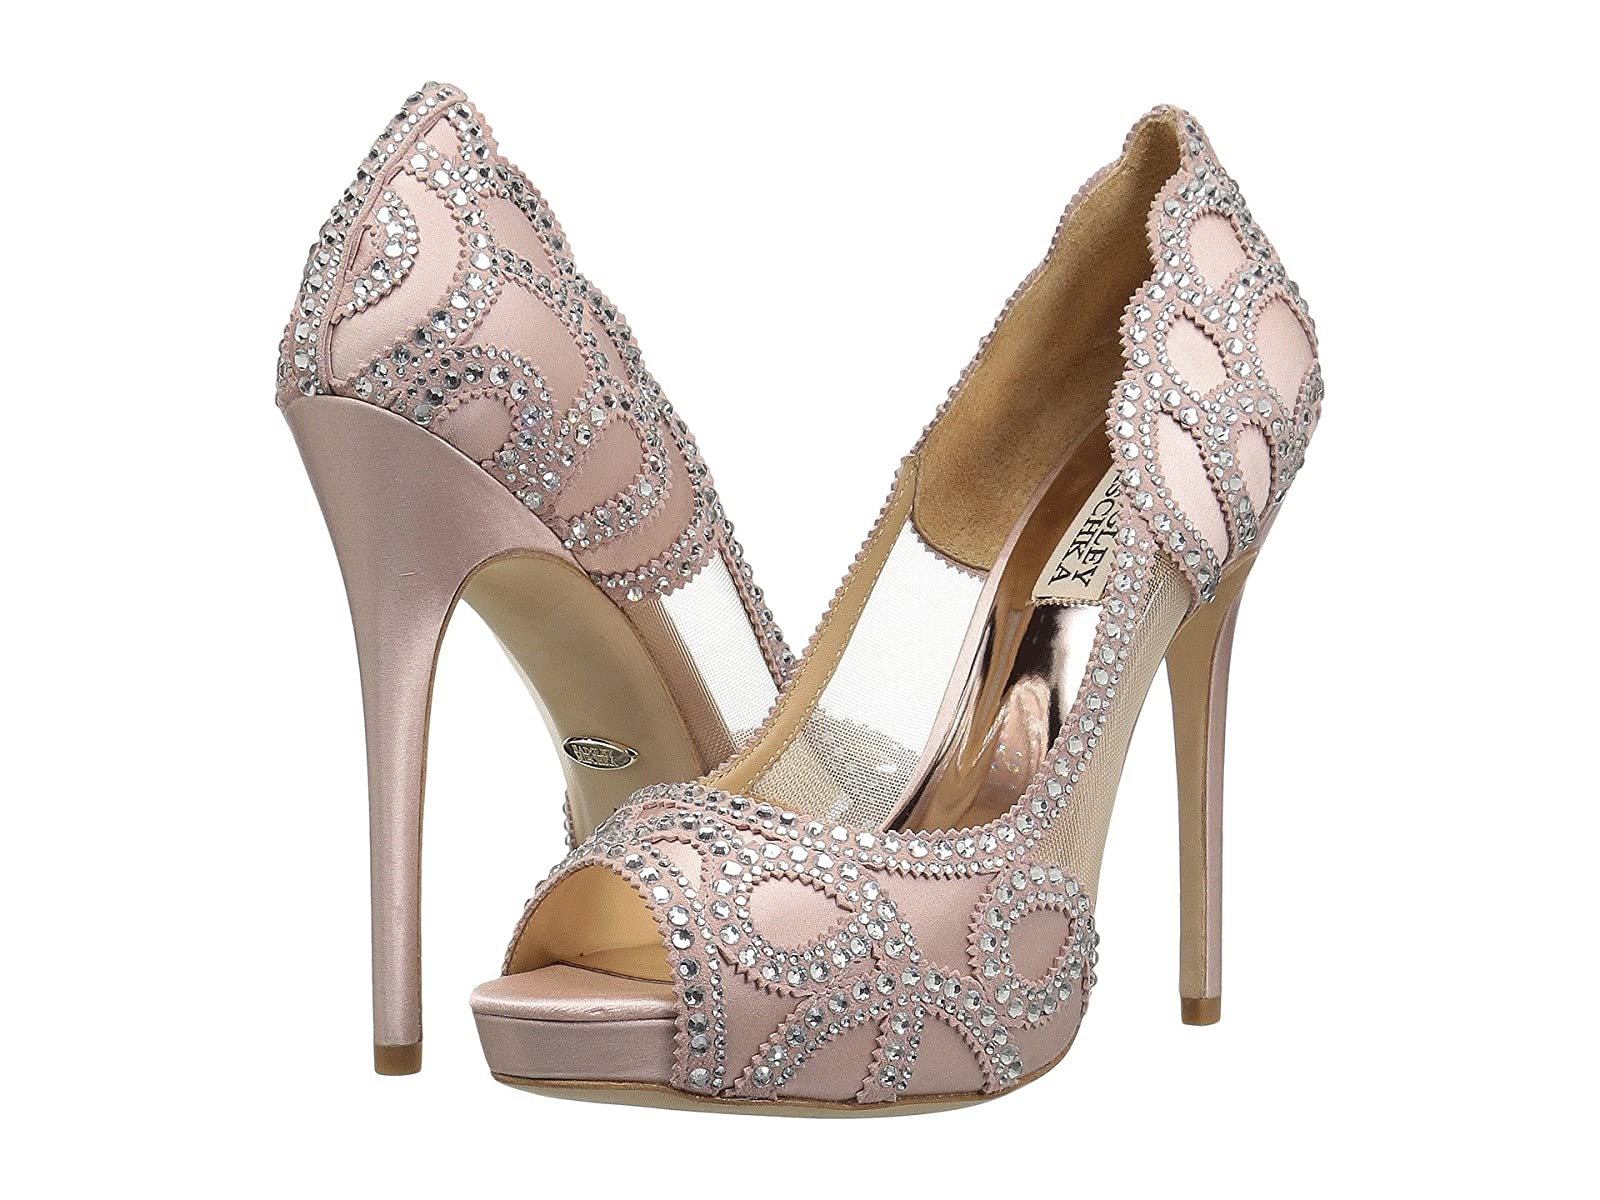 Badgley Mischka WitneyCheap and distinctive eye-catching shoes